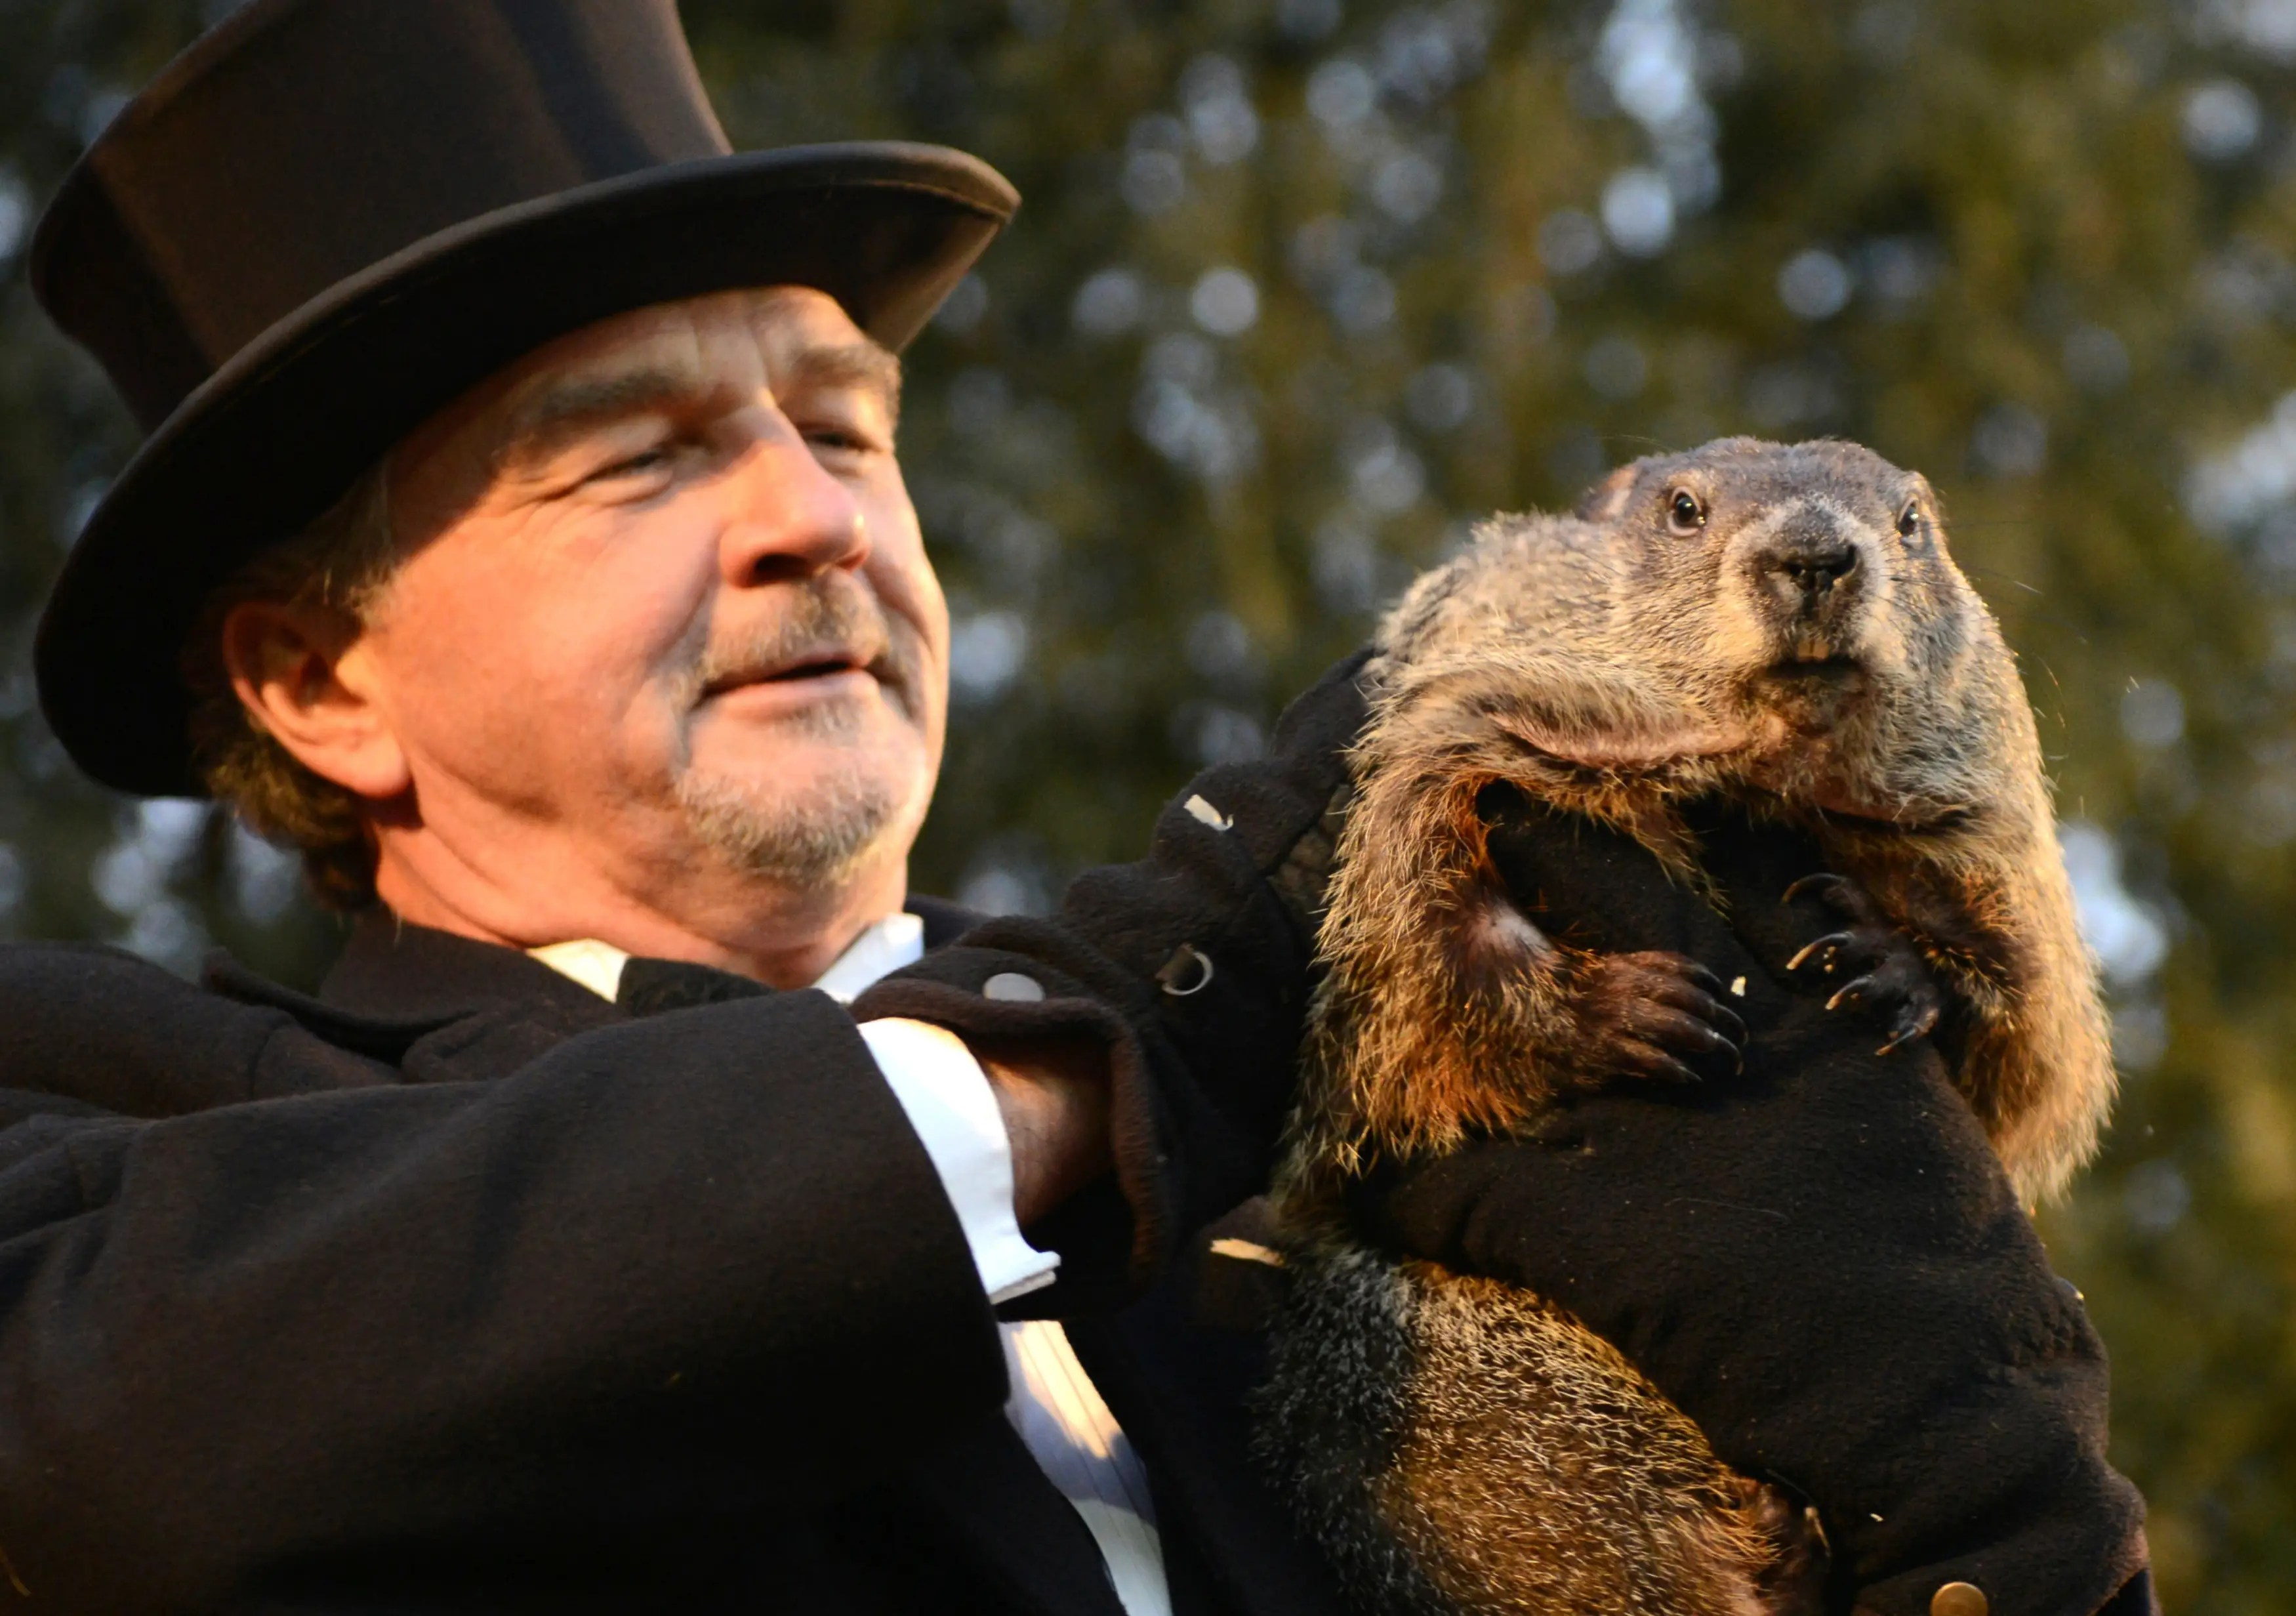 Groundhog Day The Real Spring Forecast According To A